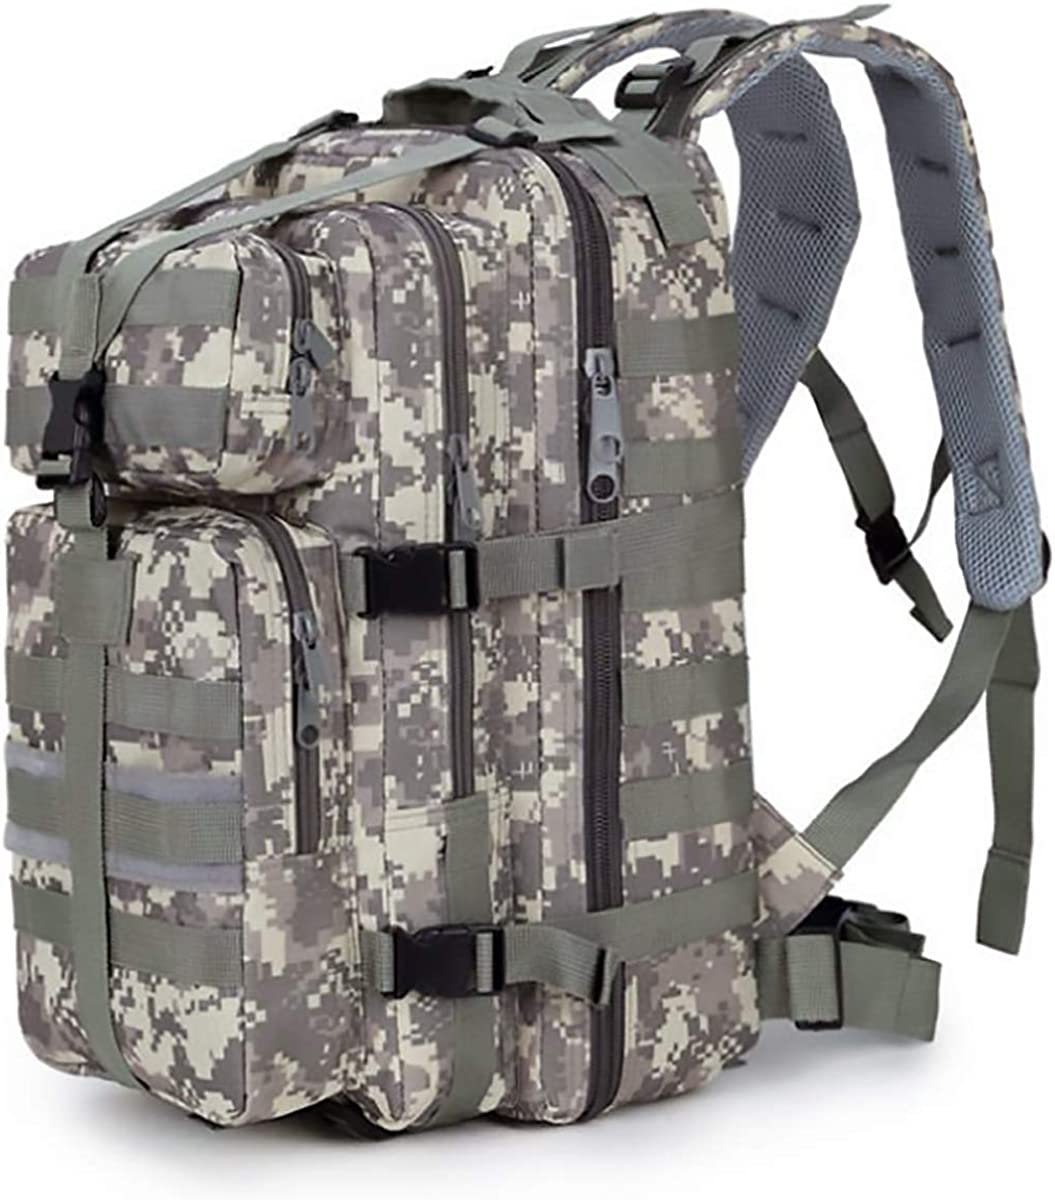 ALTBP Military Tactical Backpack 35L Molle Woodland Backpack Hiking